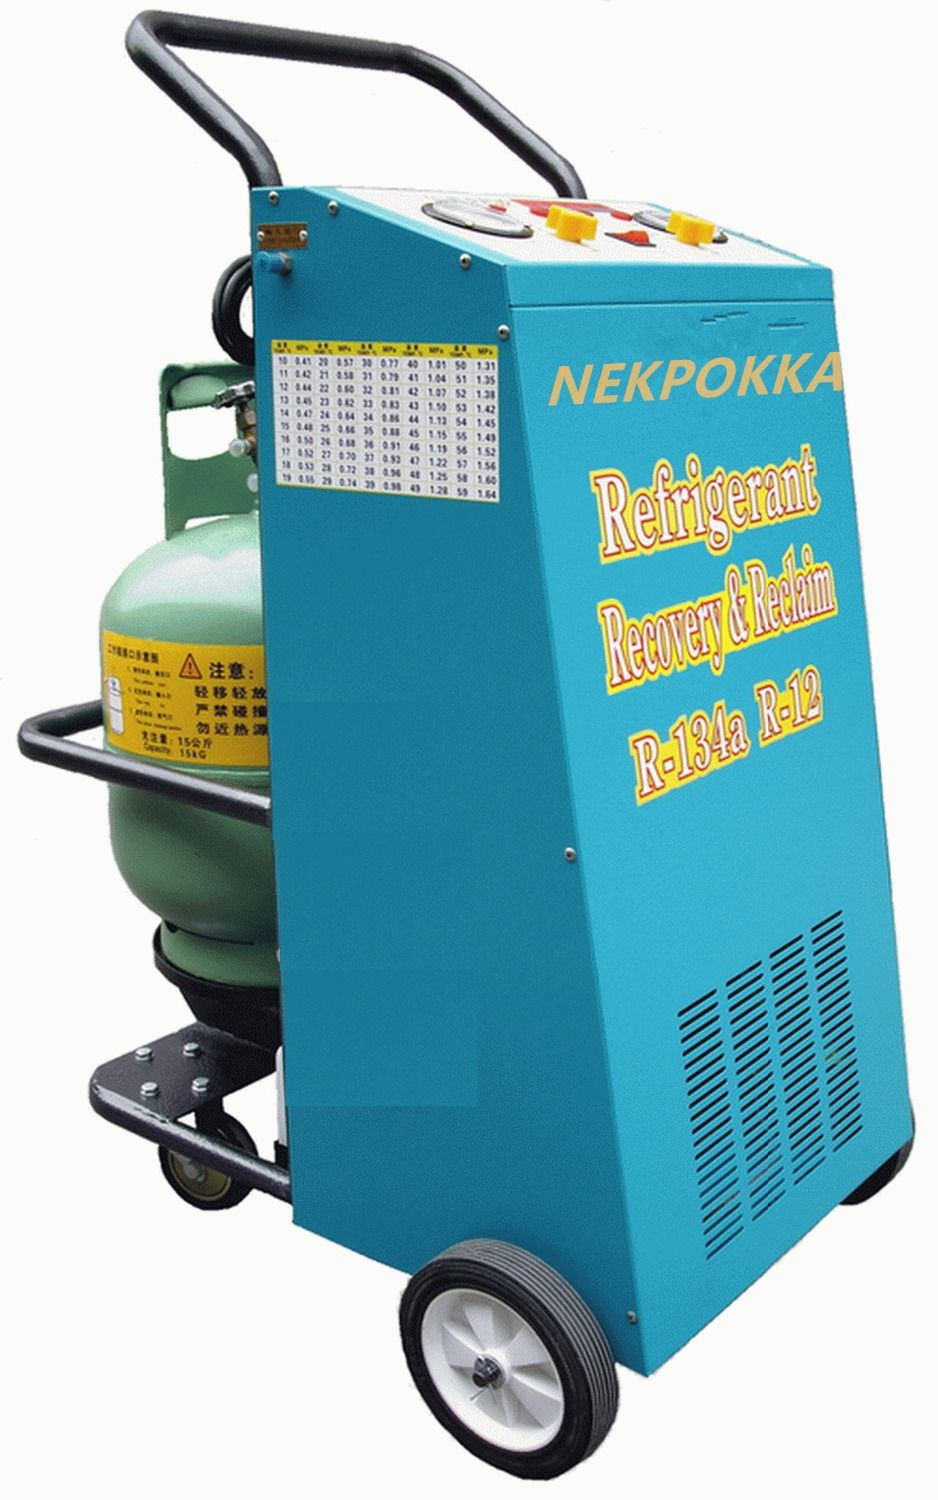 Refrigerant recovery and filling machine,It is suitable